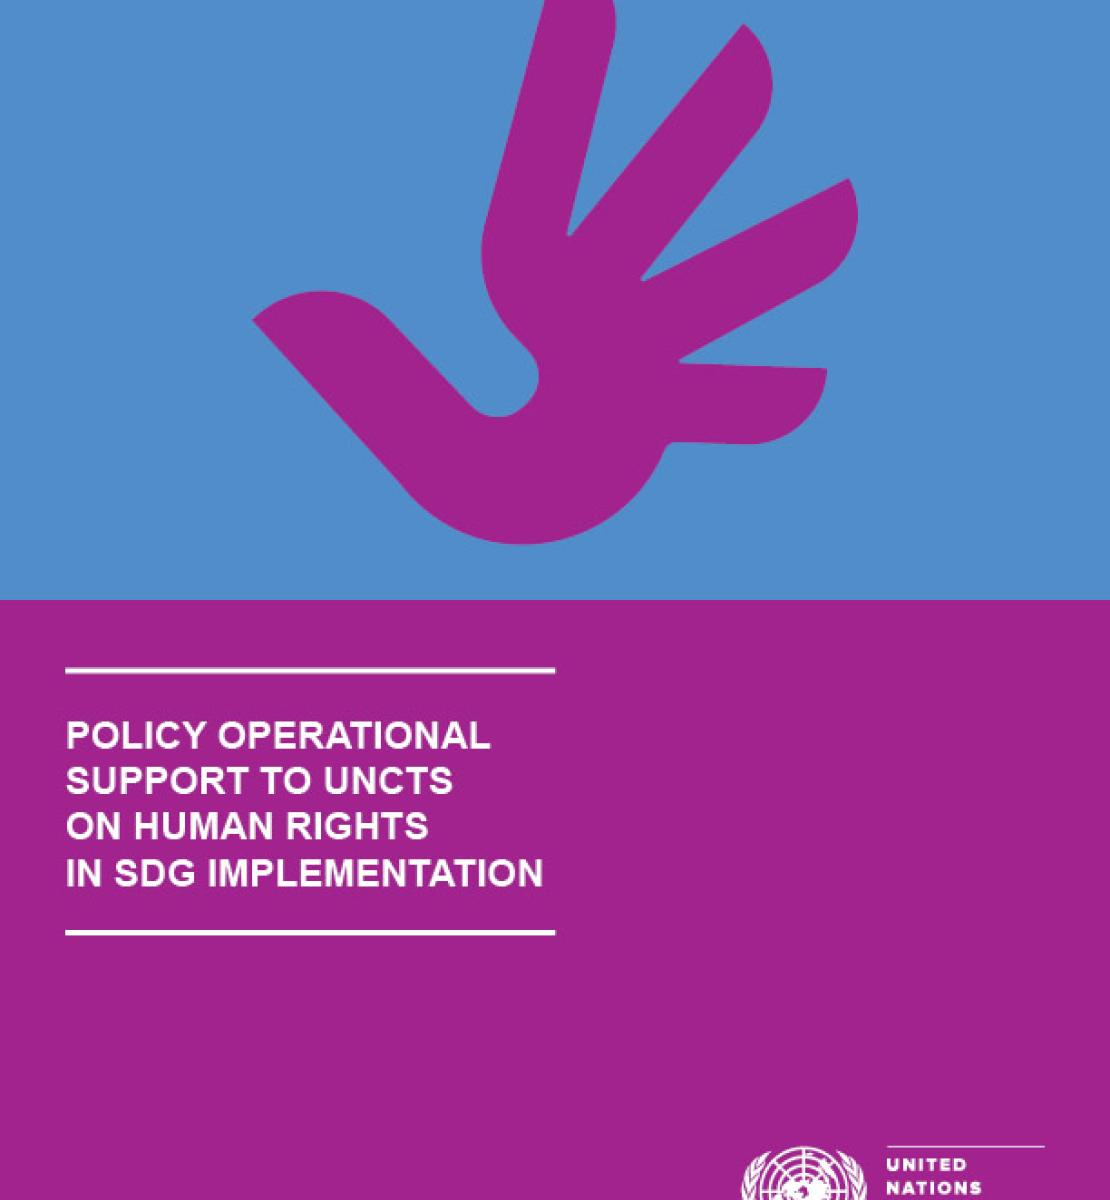 Policy and Operational Support for UNCTs on Human Rights in SDG Implementation